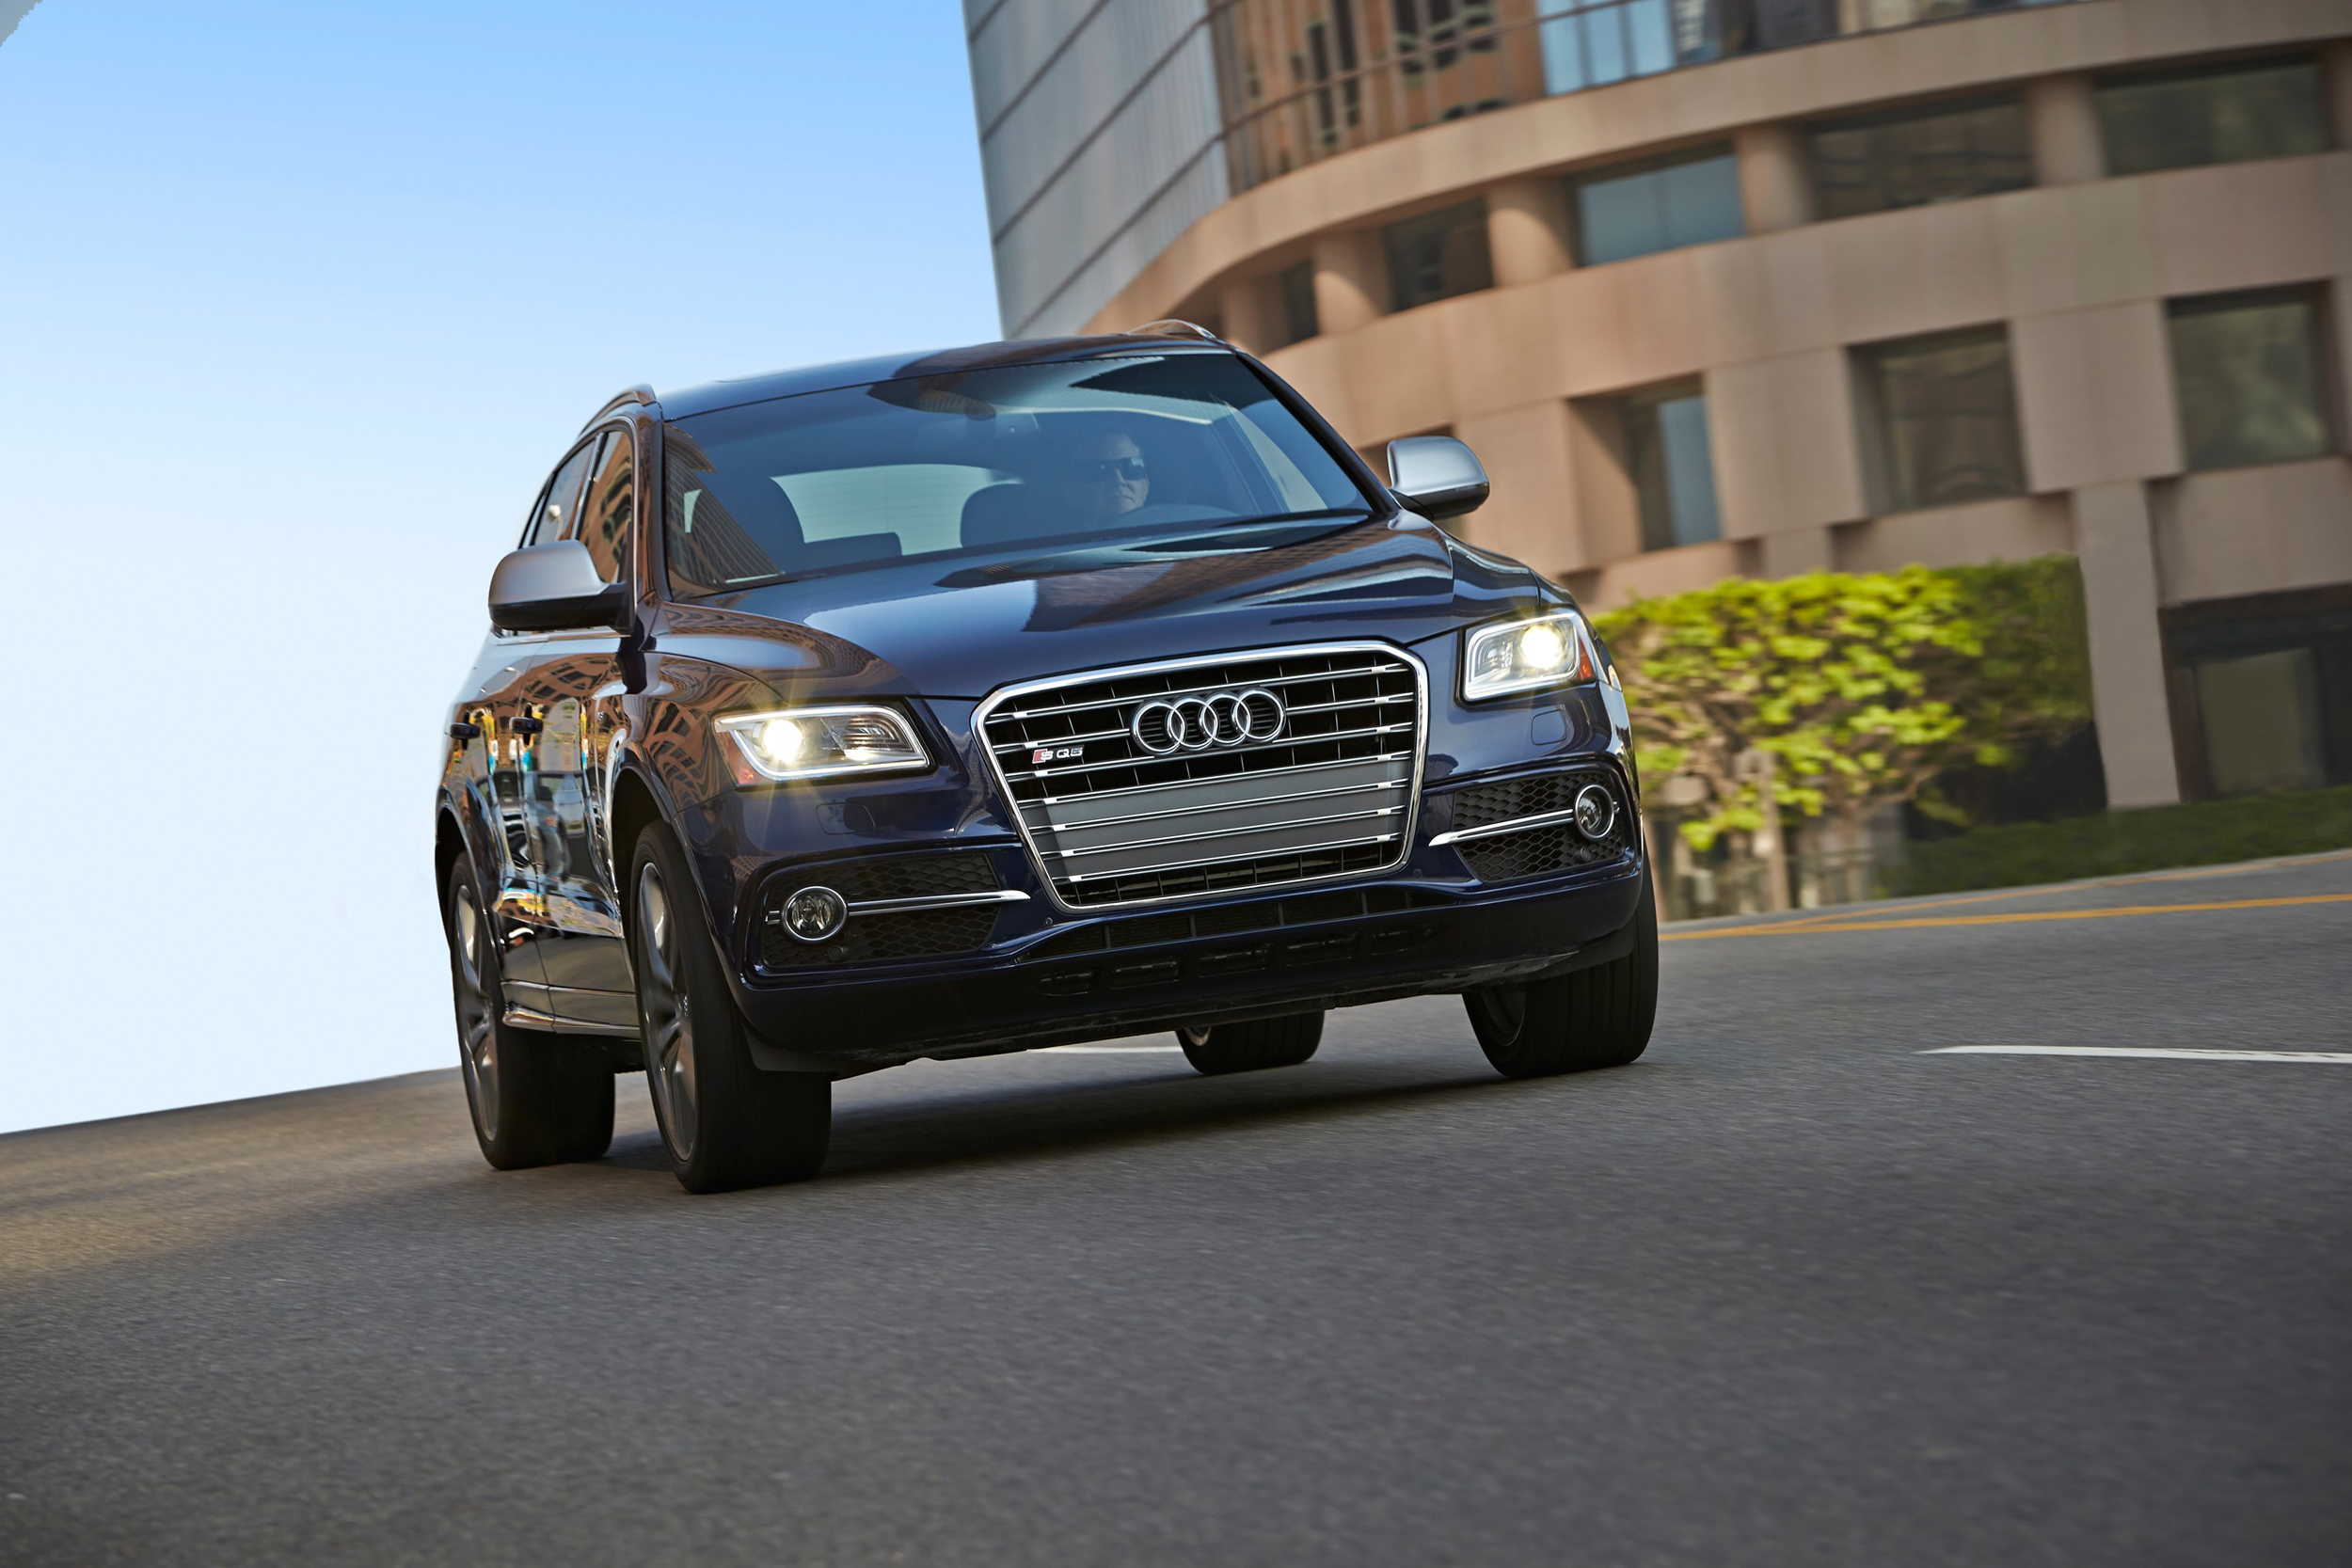 evening express meet price practical our powerful motoring and audi